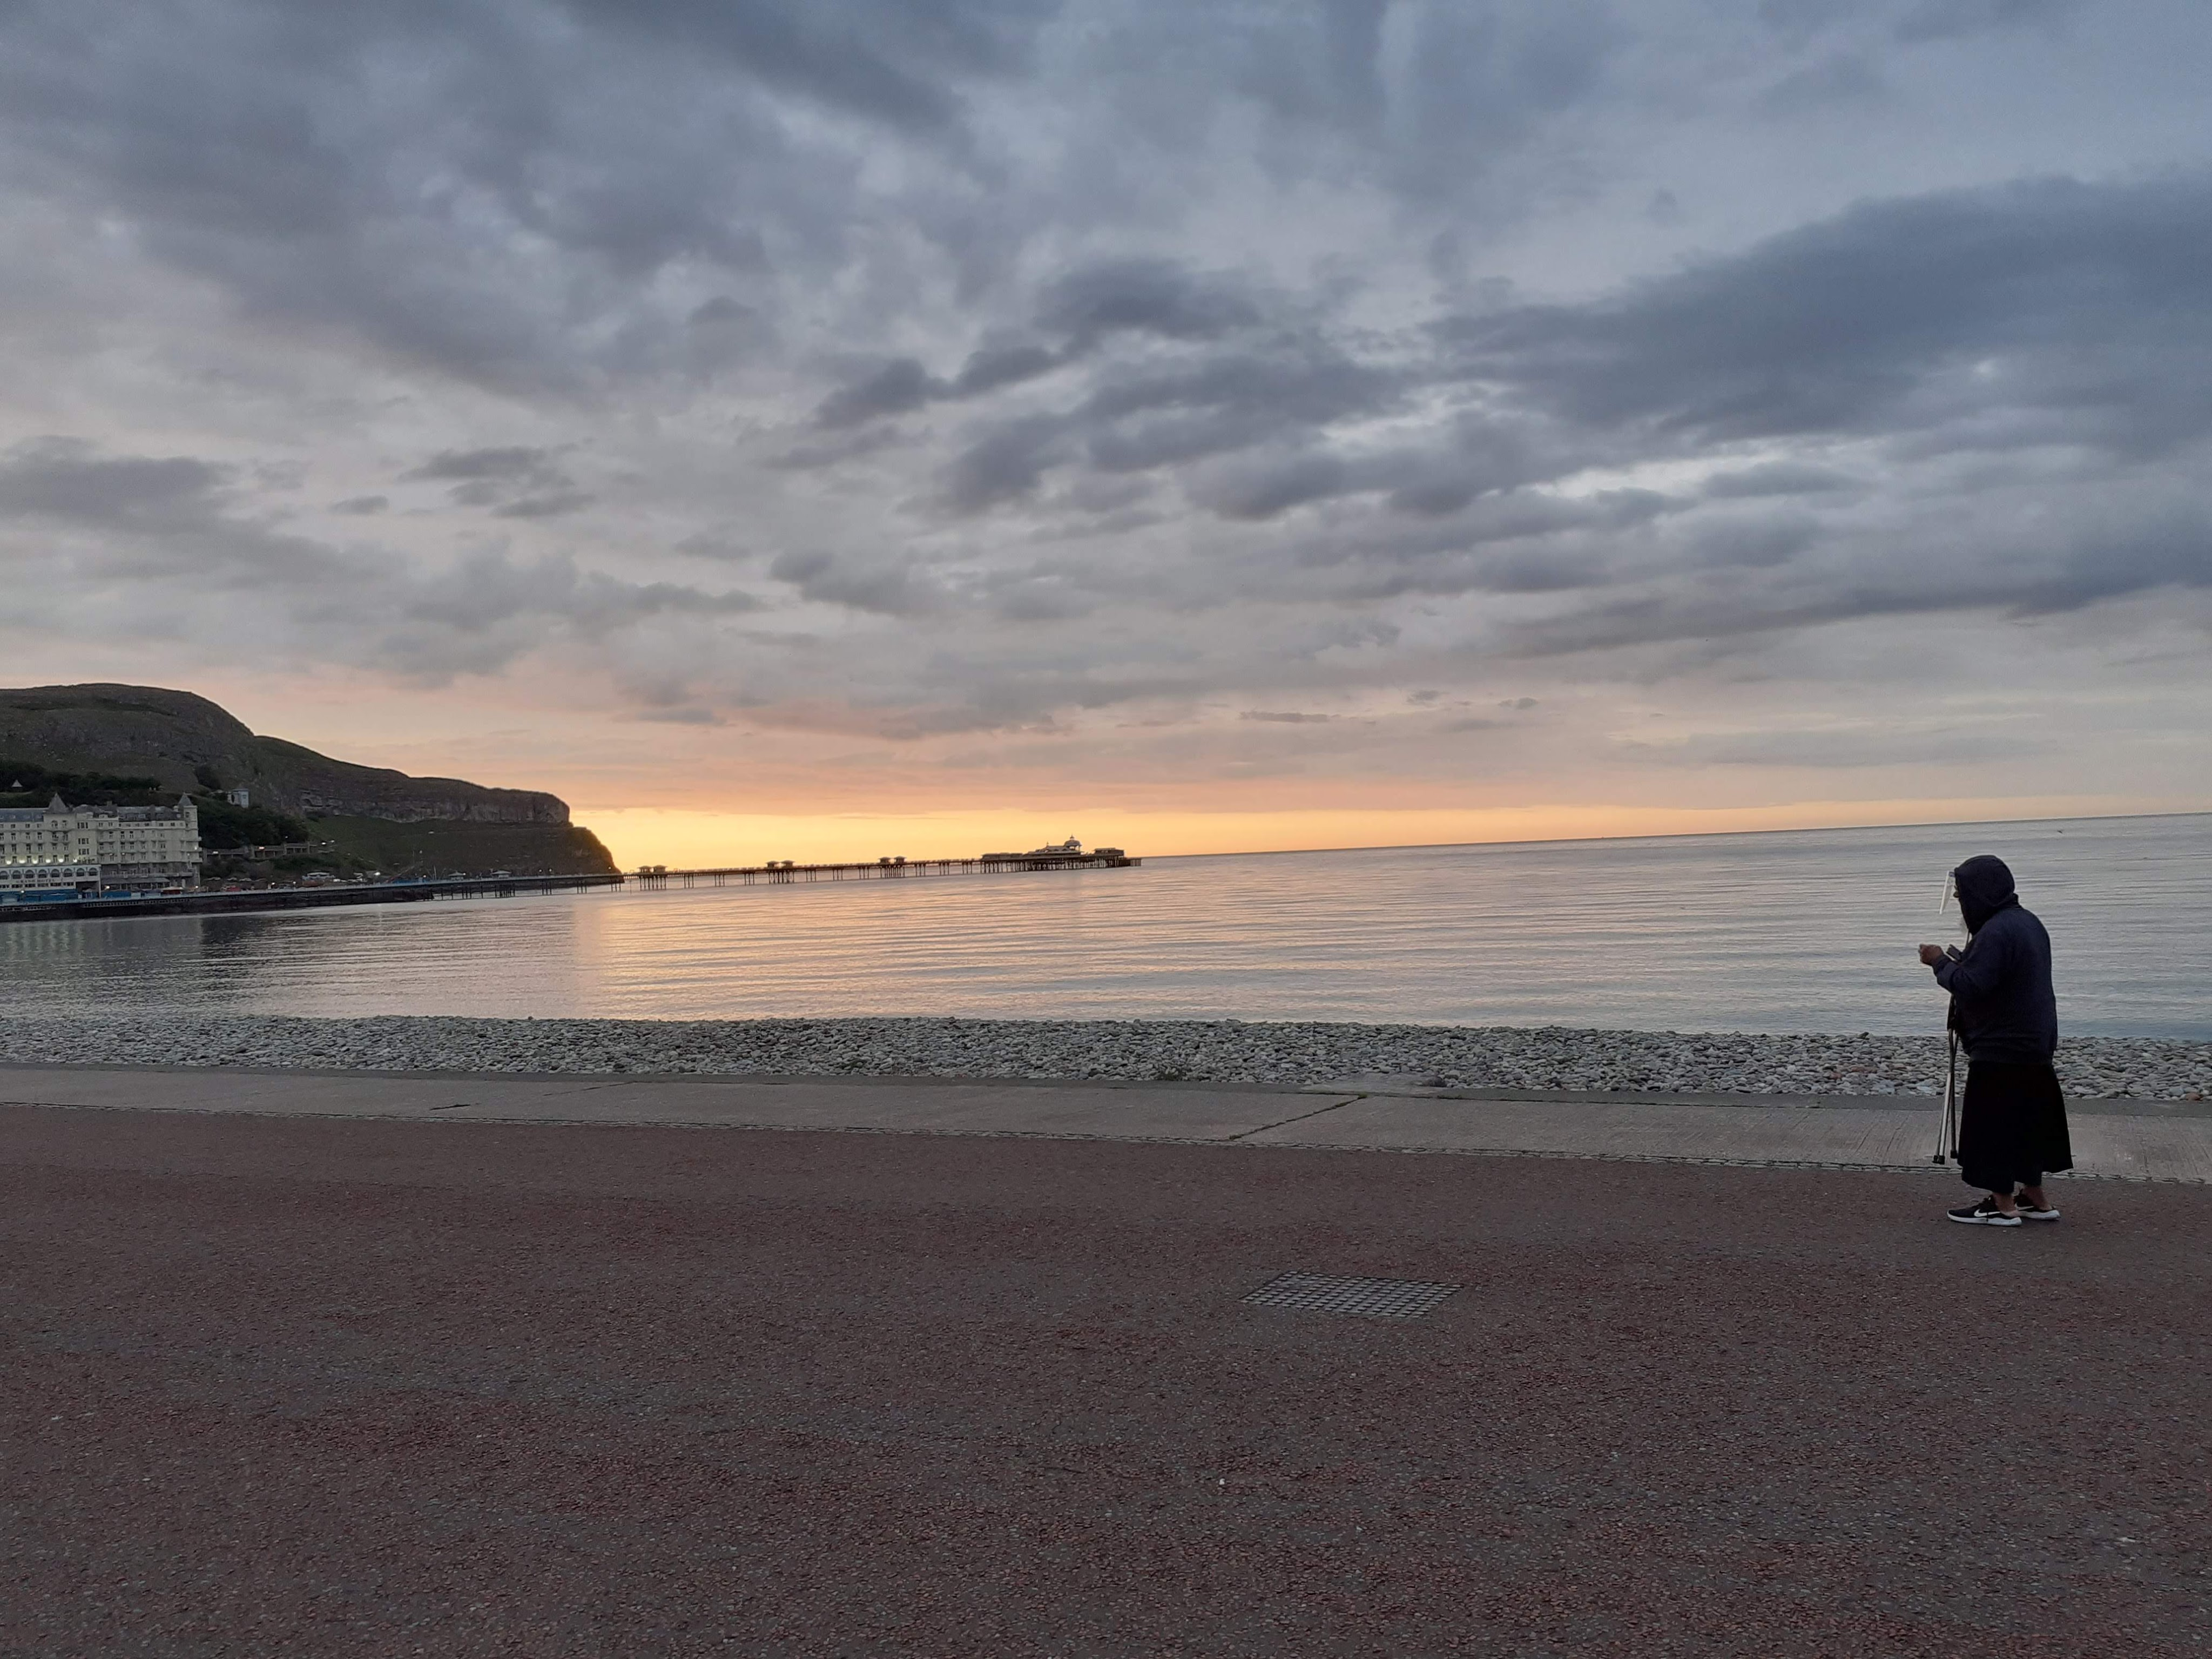 Sunset over Llandudno Pier. A man in shadow in hoodie and mask looks almost like a monk.